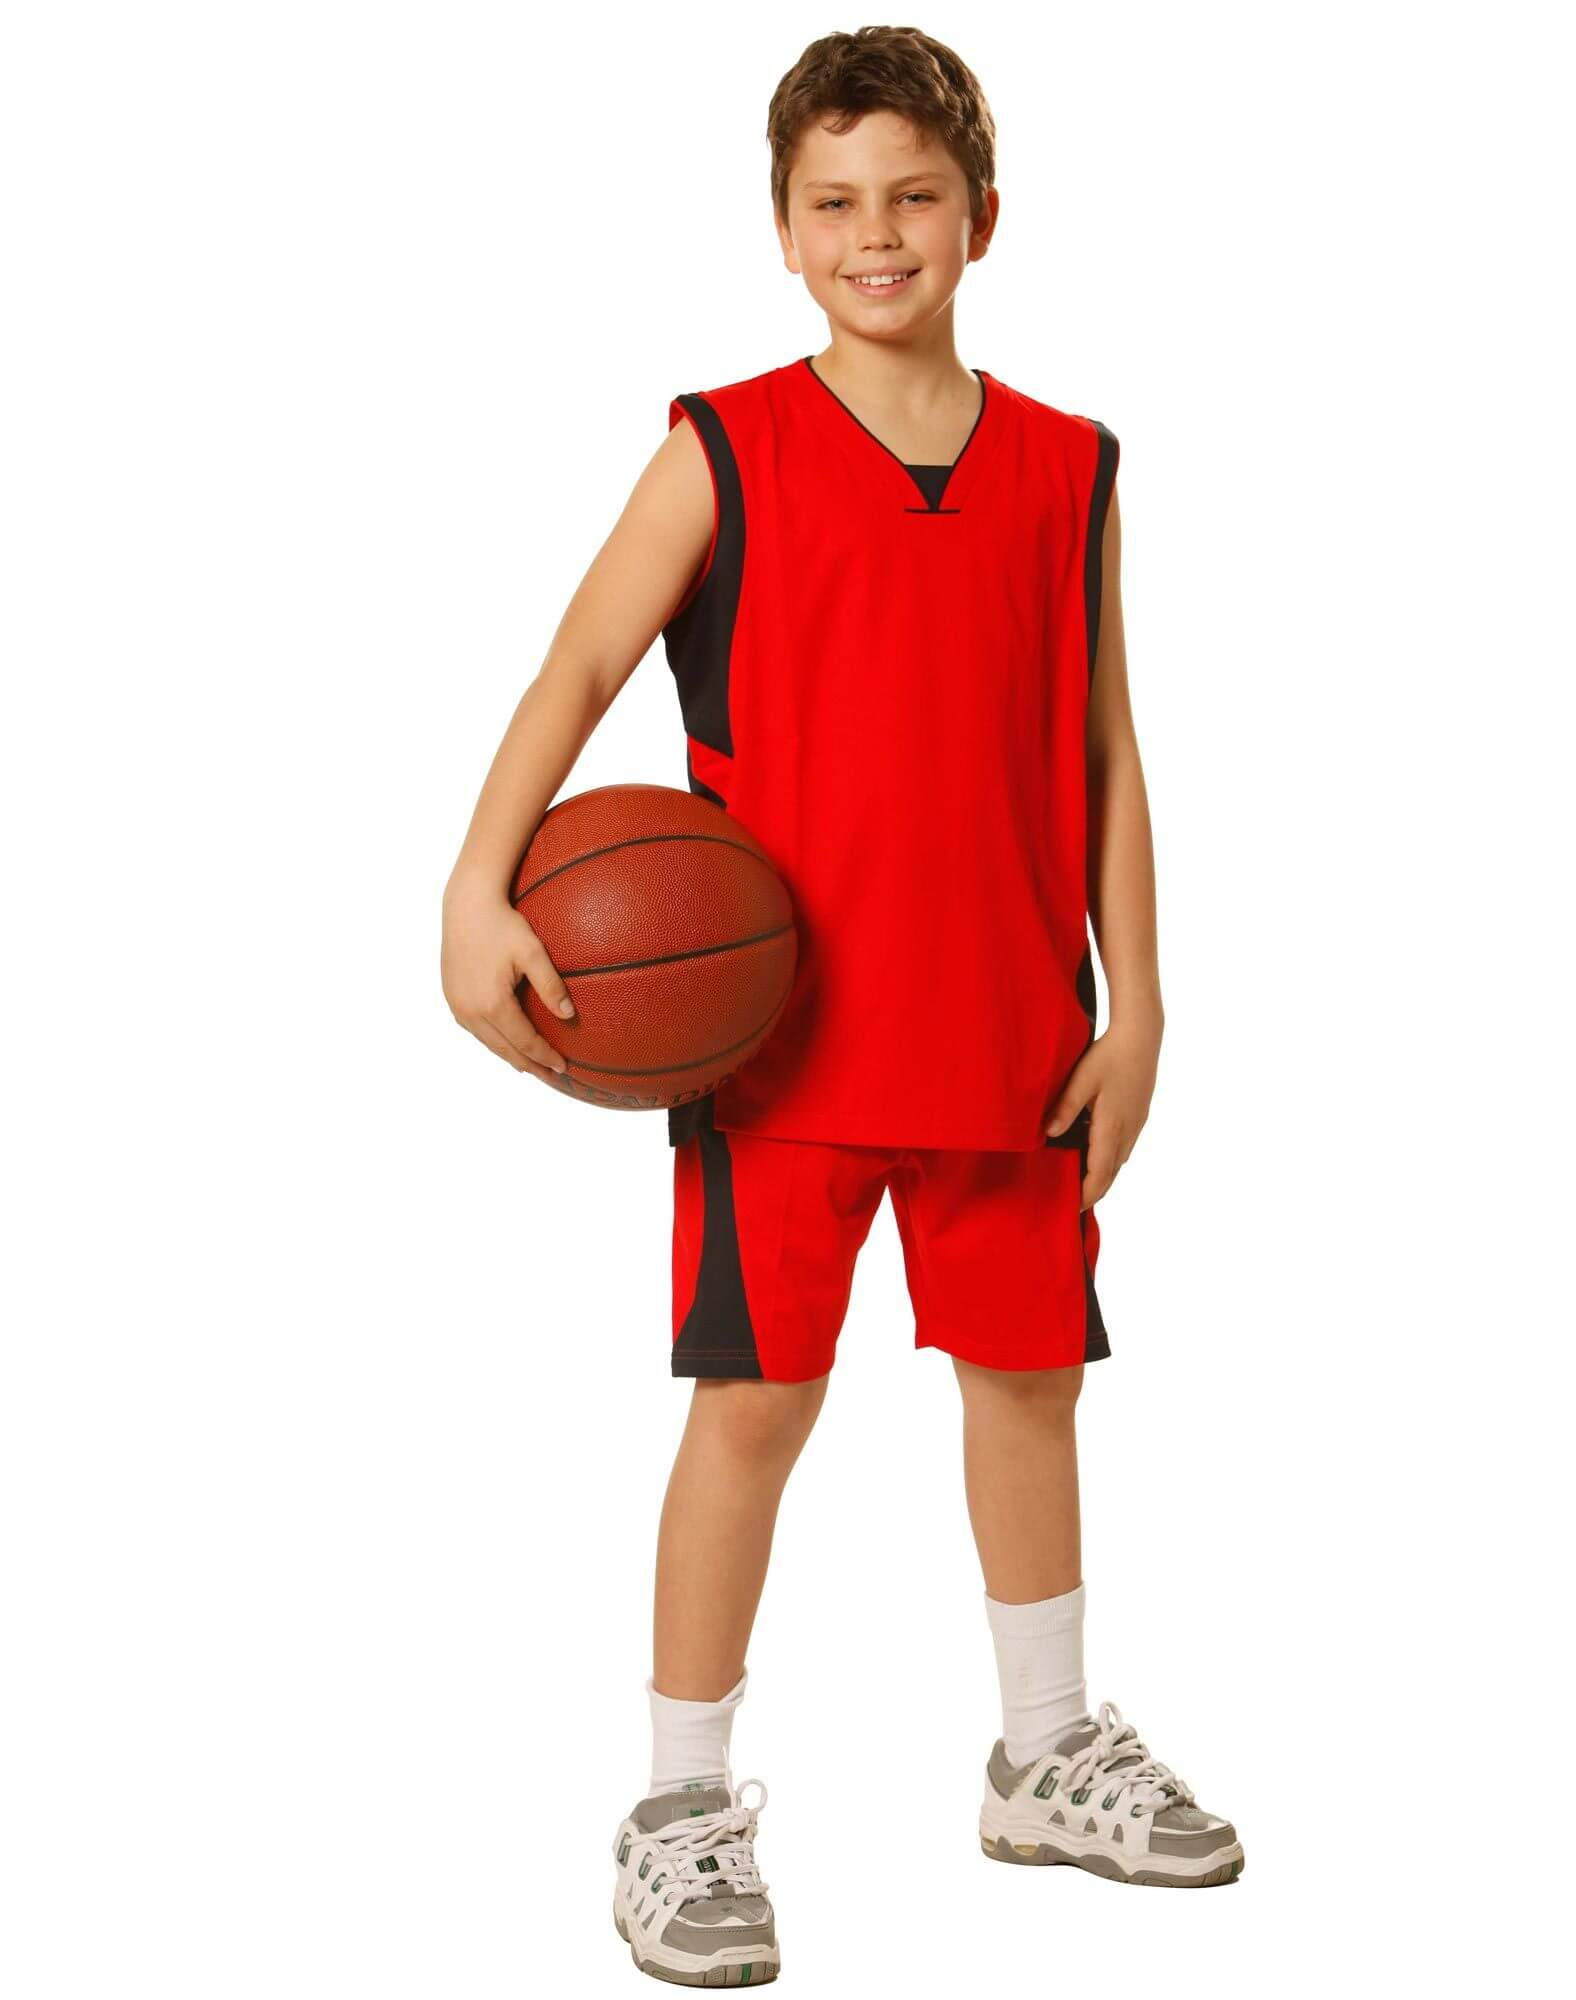 Kids Basketball Jerseys Manufacturers in Denmark